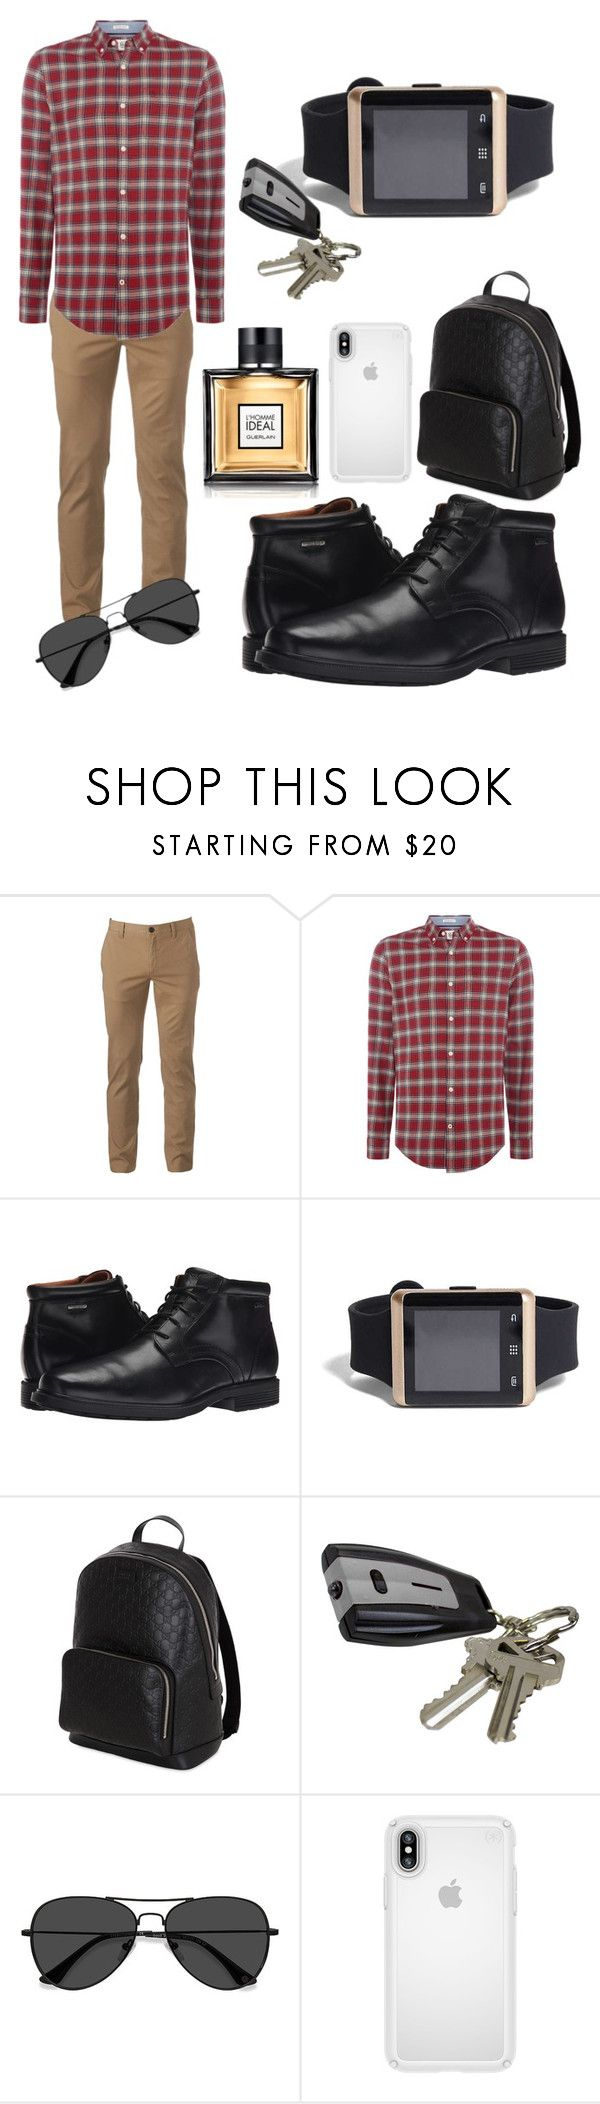 """Male Look"" by jeshaun on Polyvore featuring Urban Pipeline, Original Penguin, Rockport, 21 Men, Gucci, EyeBuyDirect.com, Speck, Guerlain, men's fashion and menswear"